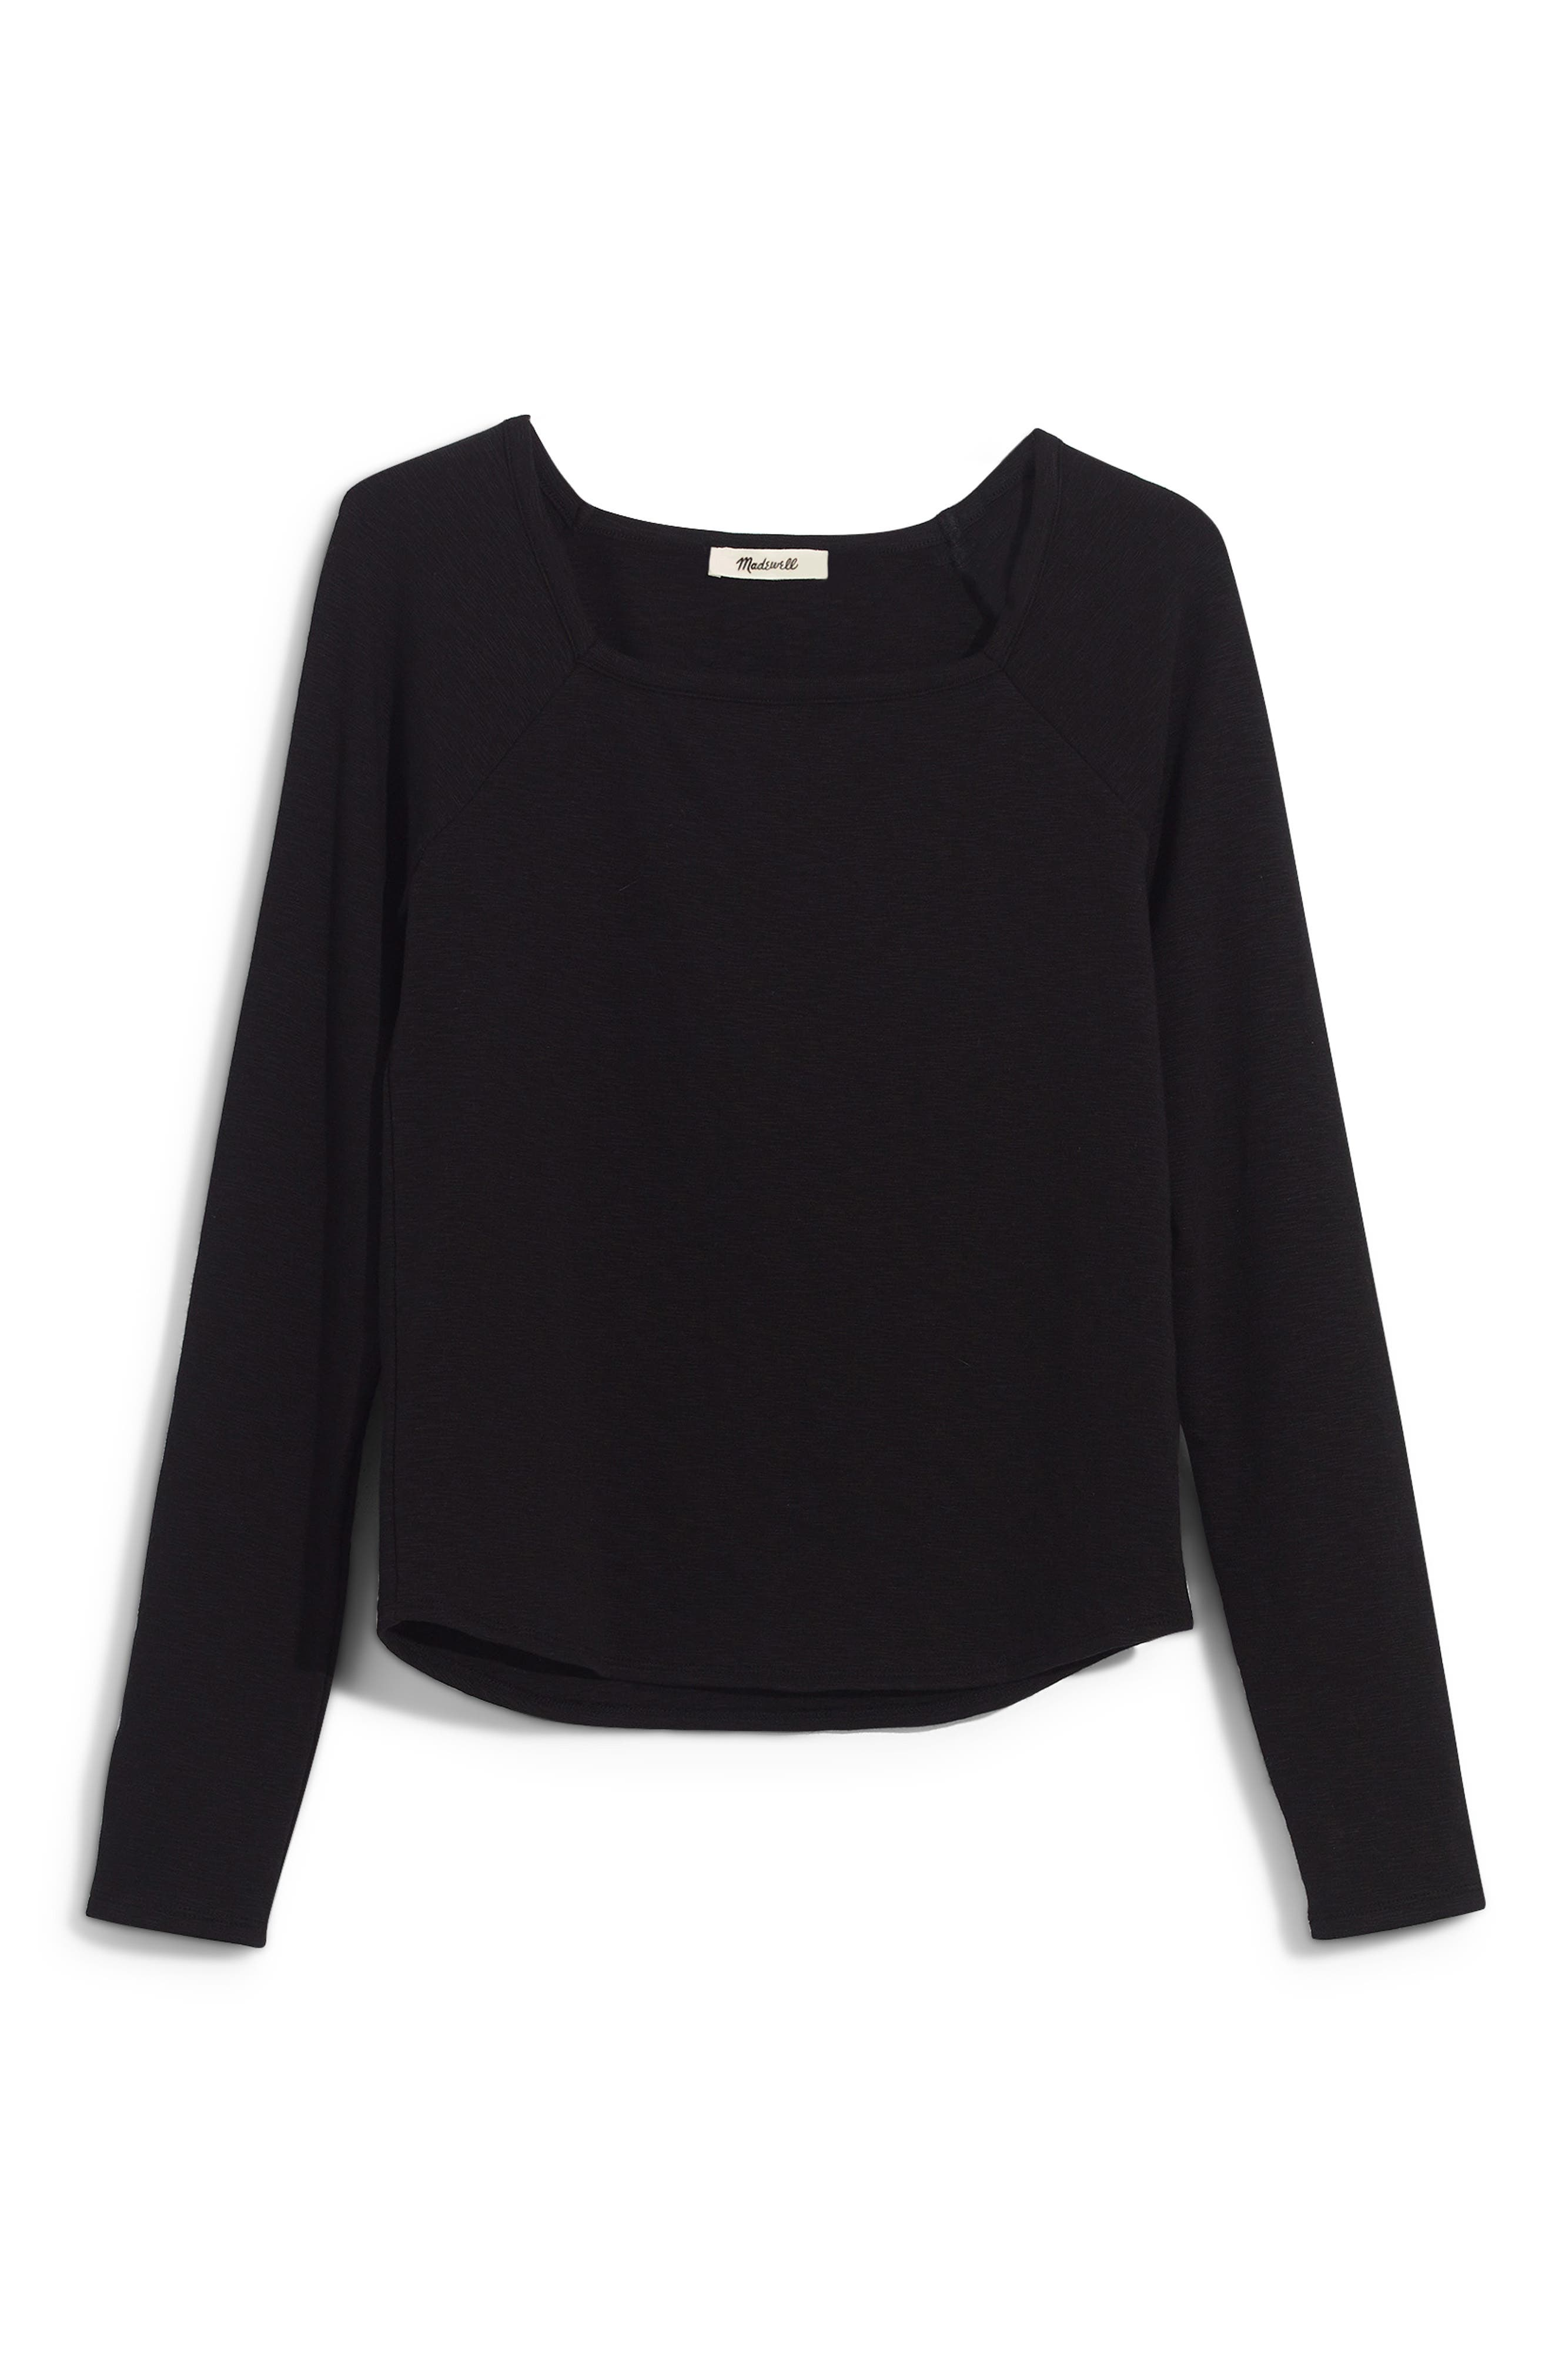 MADEWELL, Square Neck Long Sleeve Tee, Alternate thumbnail 6, color, TRUE BLACK